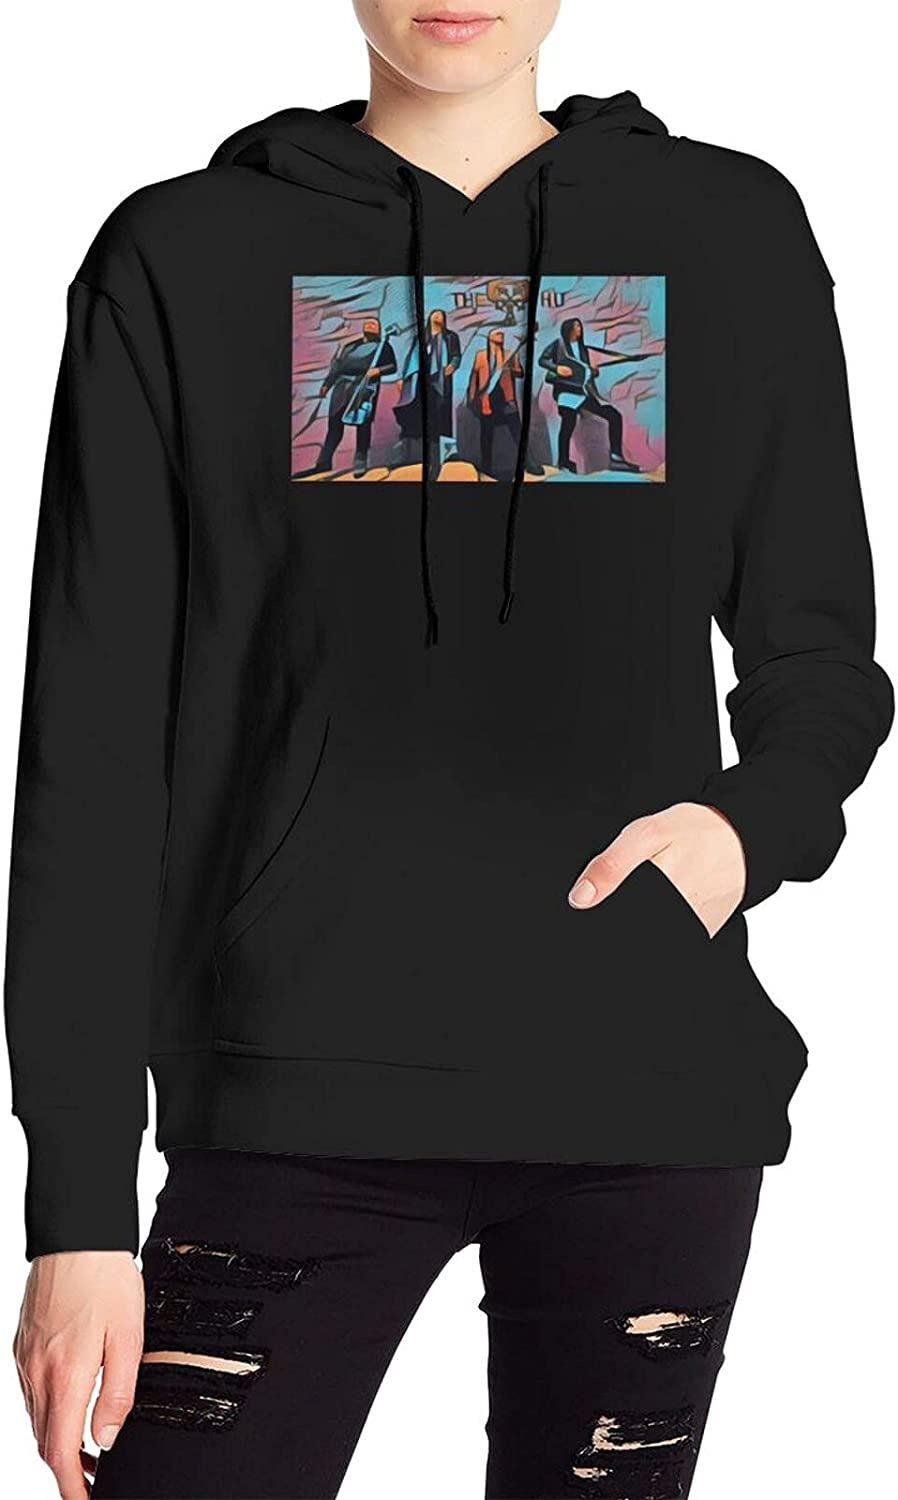 The Hu Band Sweater Novelty Hooded With Pocket For Men'S Women